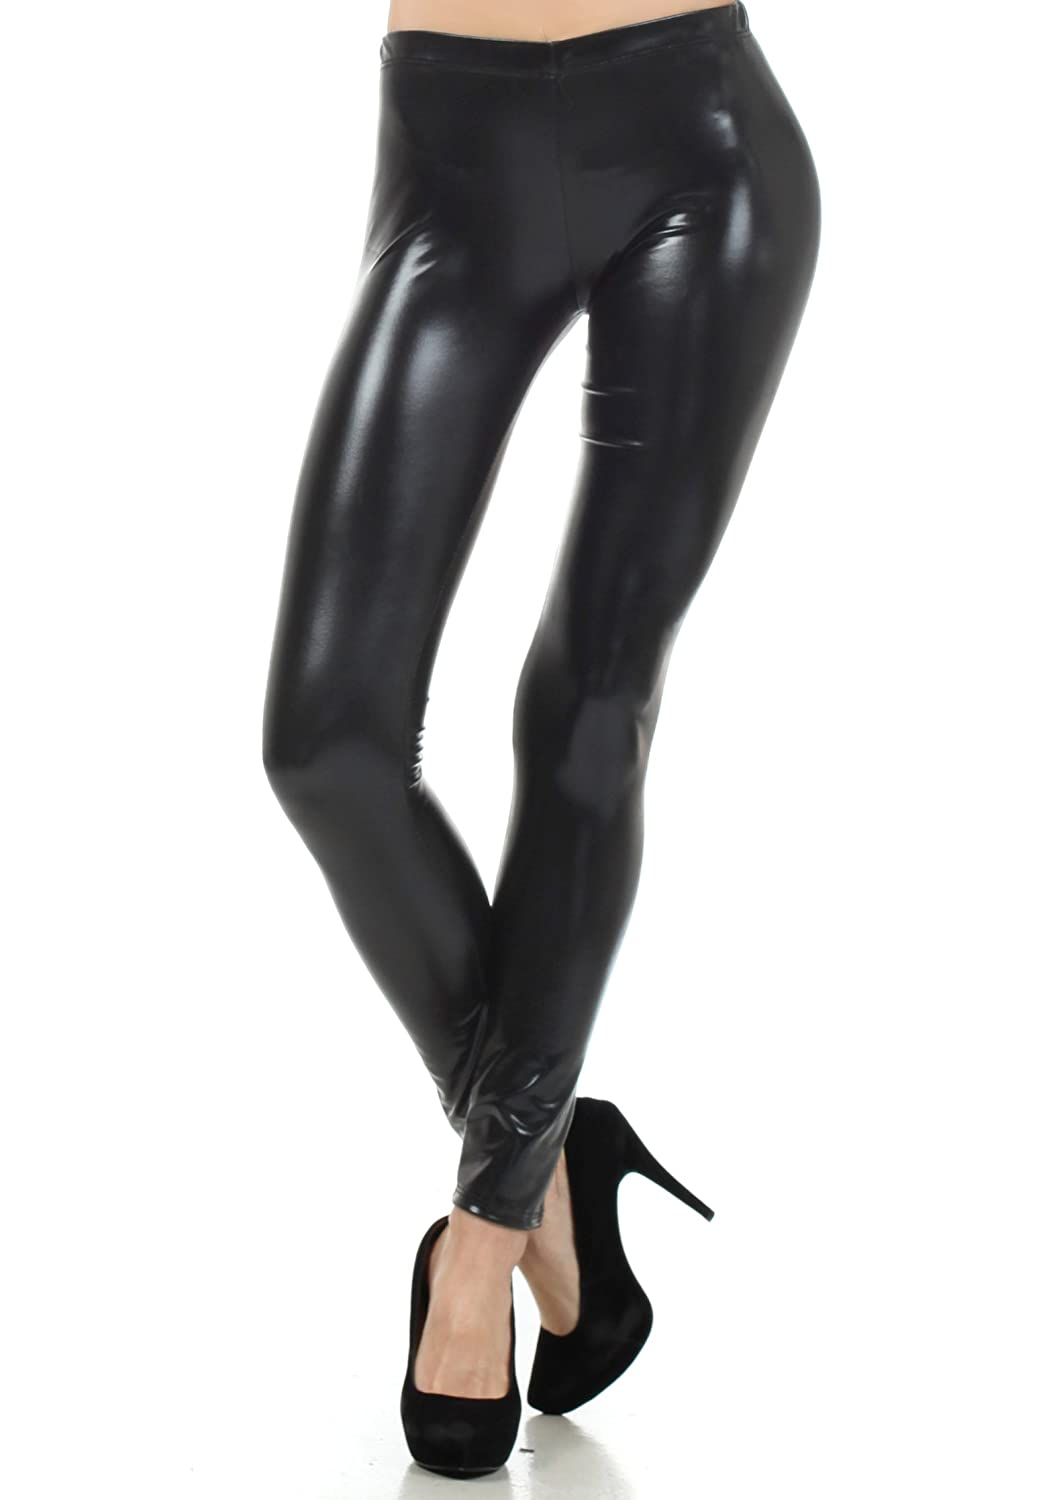 6304ae9e0fdd4 Trendy Leggings for Casual Outfits, Perfect Tights for Layering under  Dresses, Skirts, Tunics and Sweaters Features Shiny Wet Look Liquid Fabric,  ...